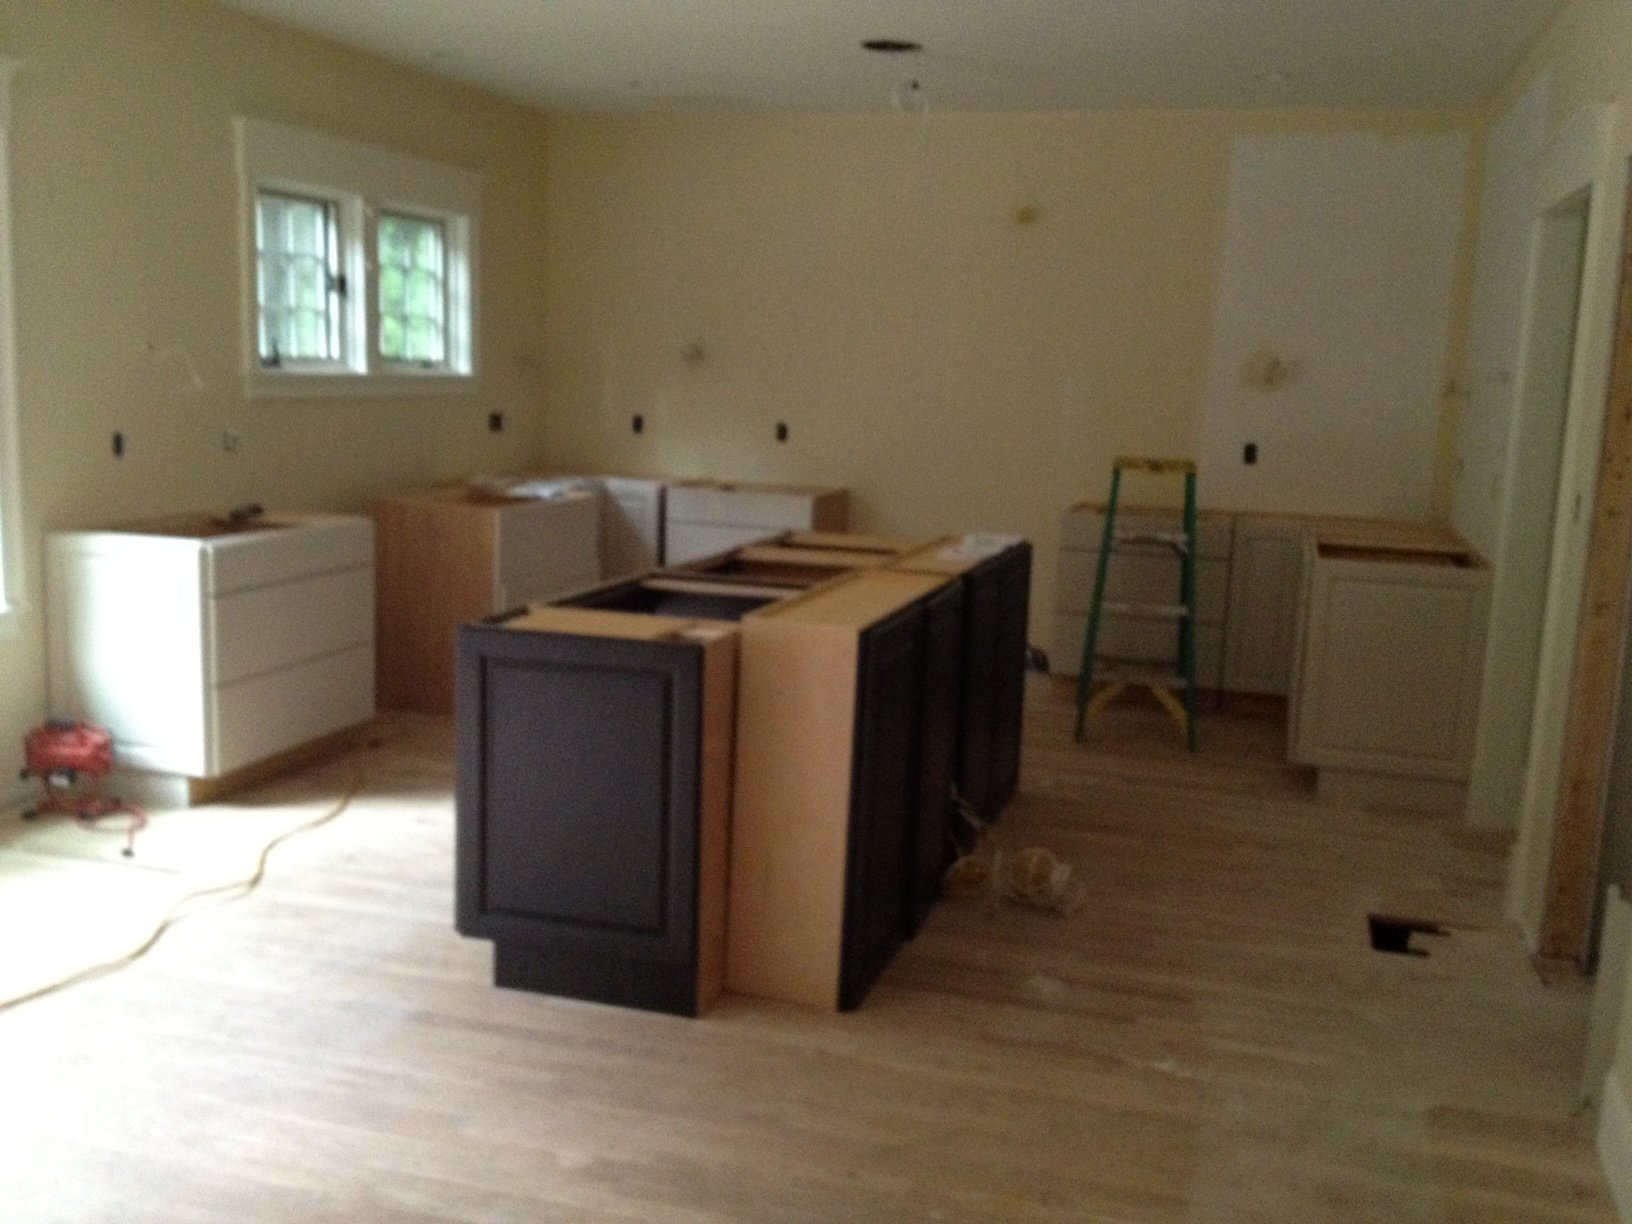 Kitchen - Cabinetry Installation